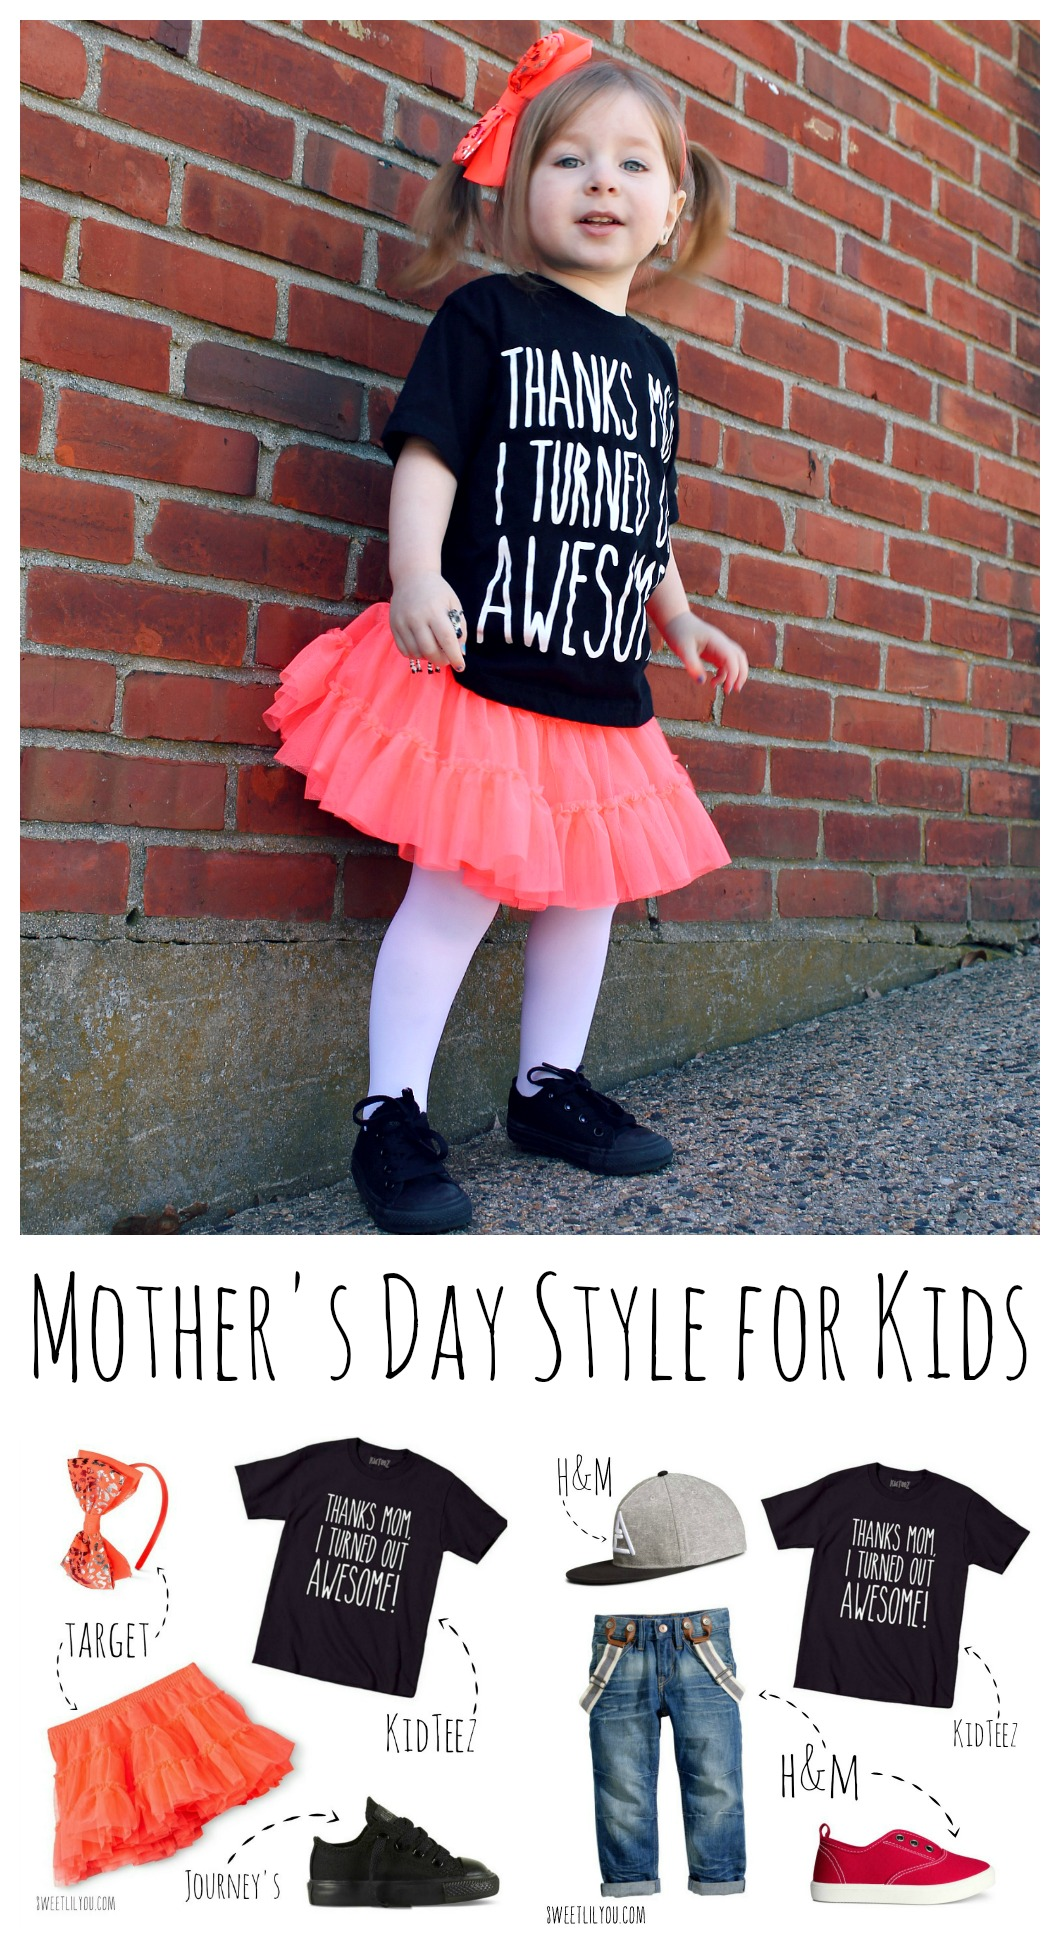 c5deec707 Today's Mircofashion Monday theme is Mother's Day!! We're all about the cute  mommy themed graphic tees!